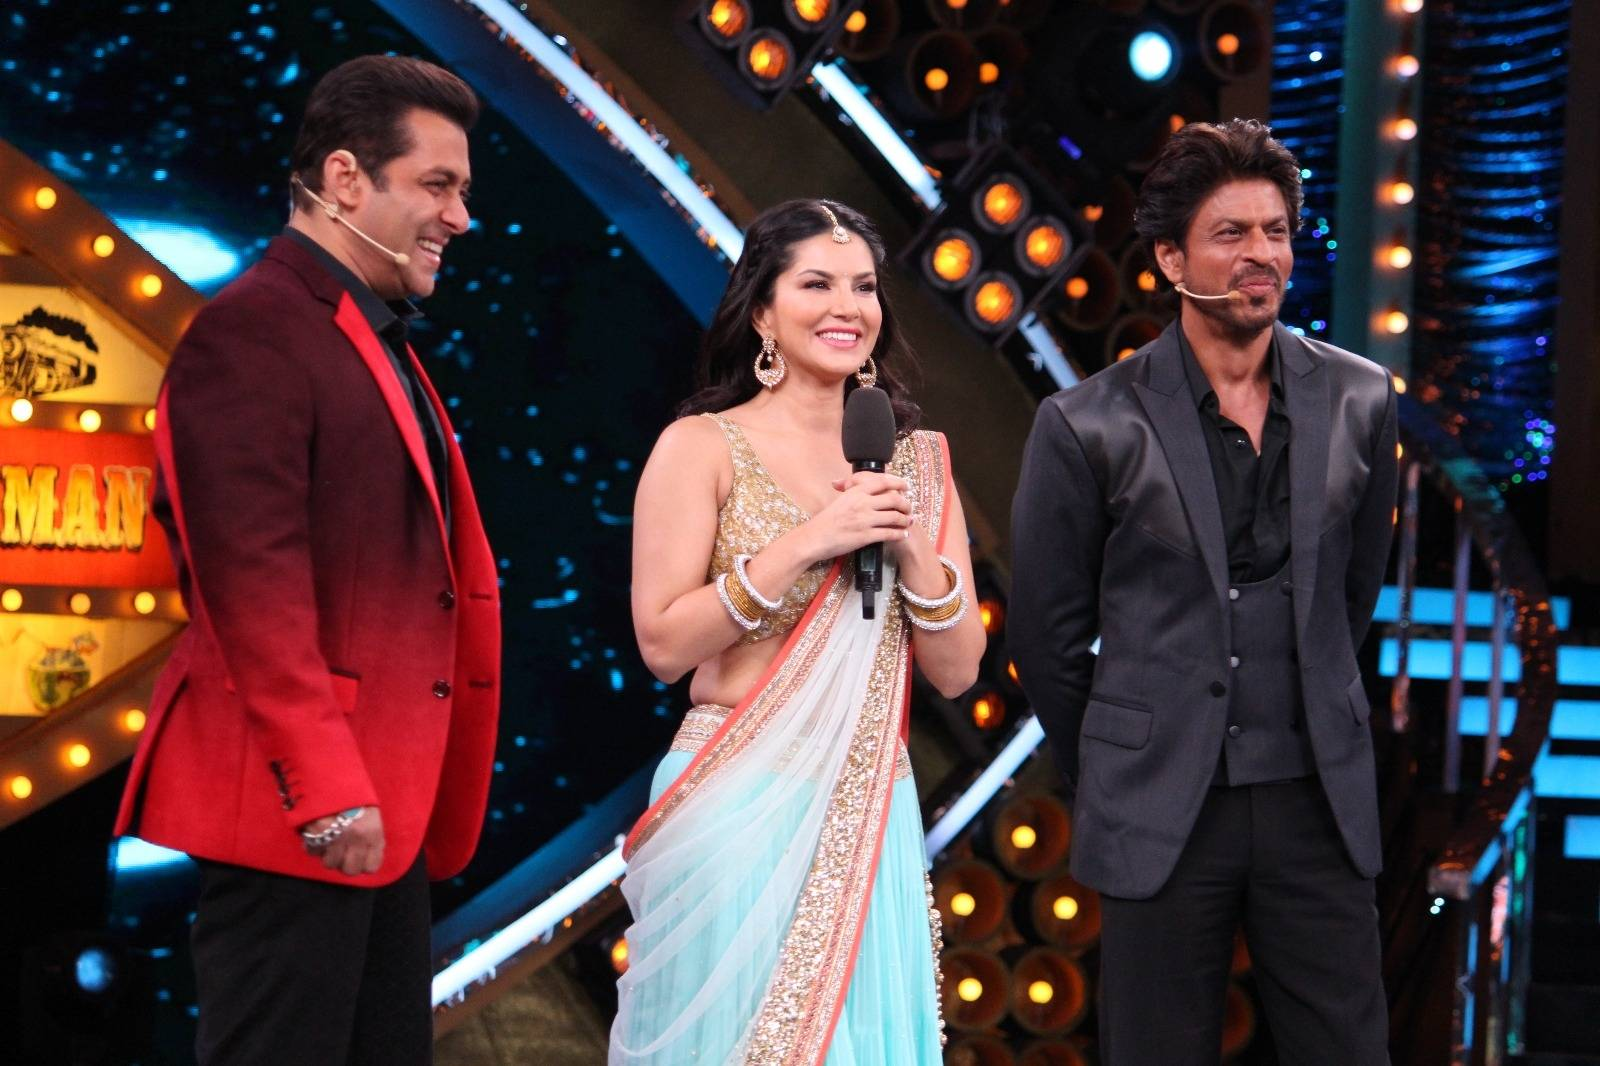 Sunny Leone dazzles on the Bigg Boss 10 stage with Shah Rukh and Salman!